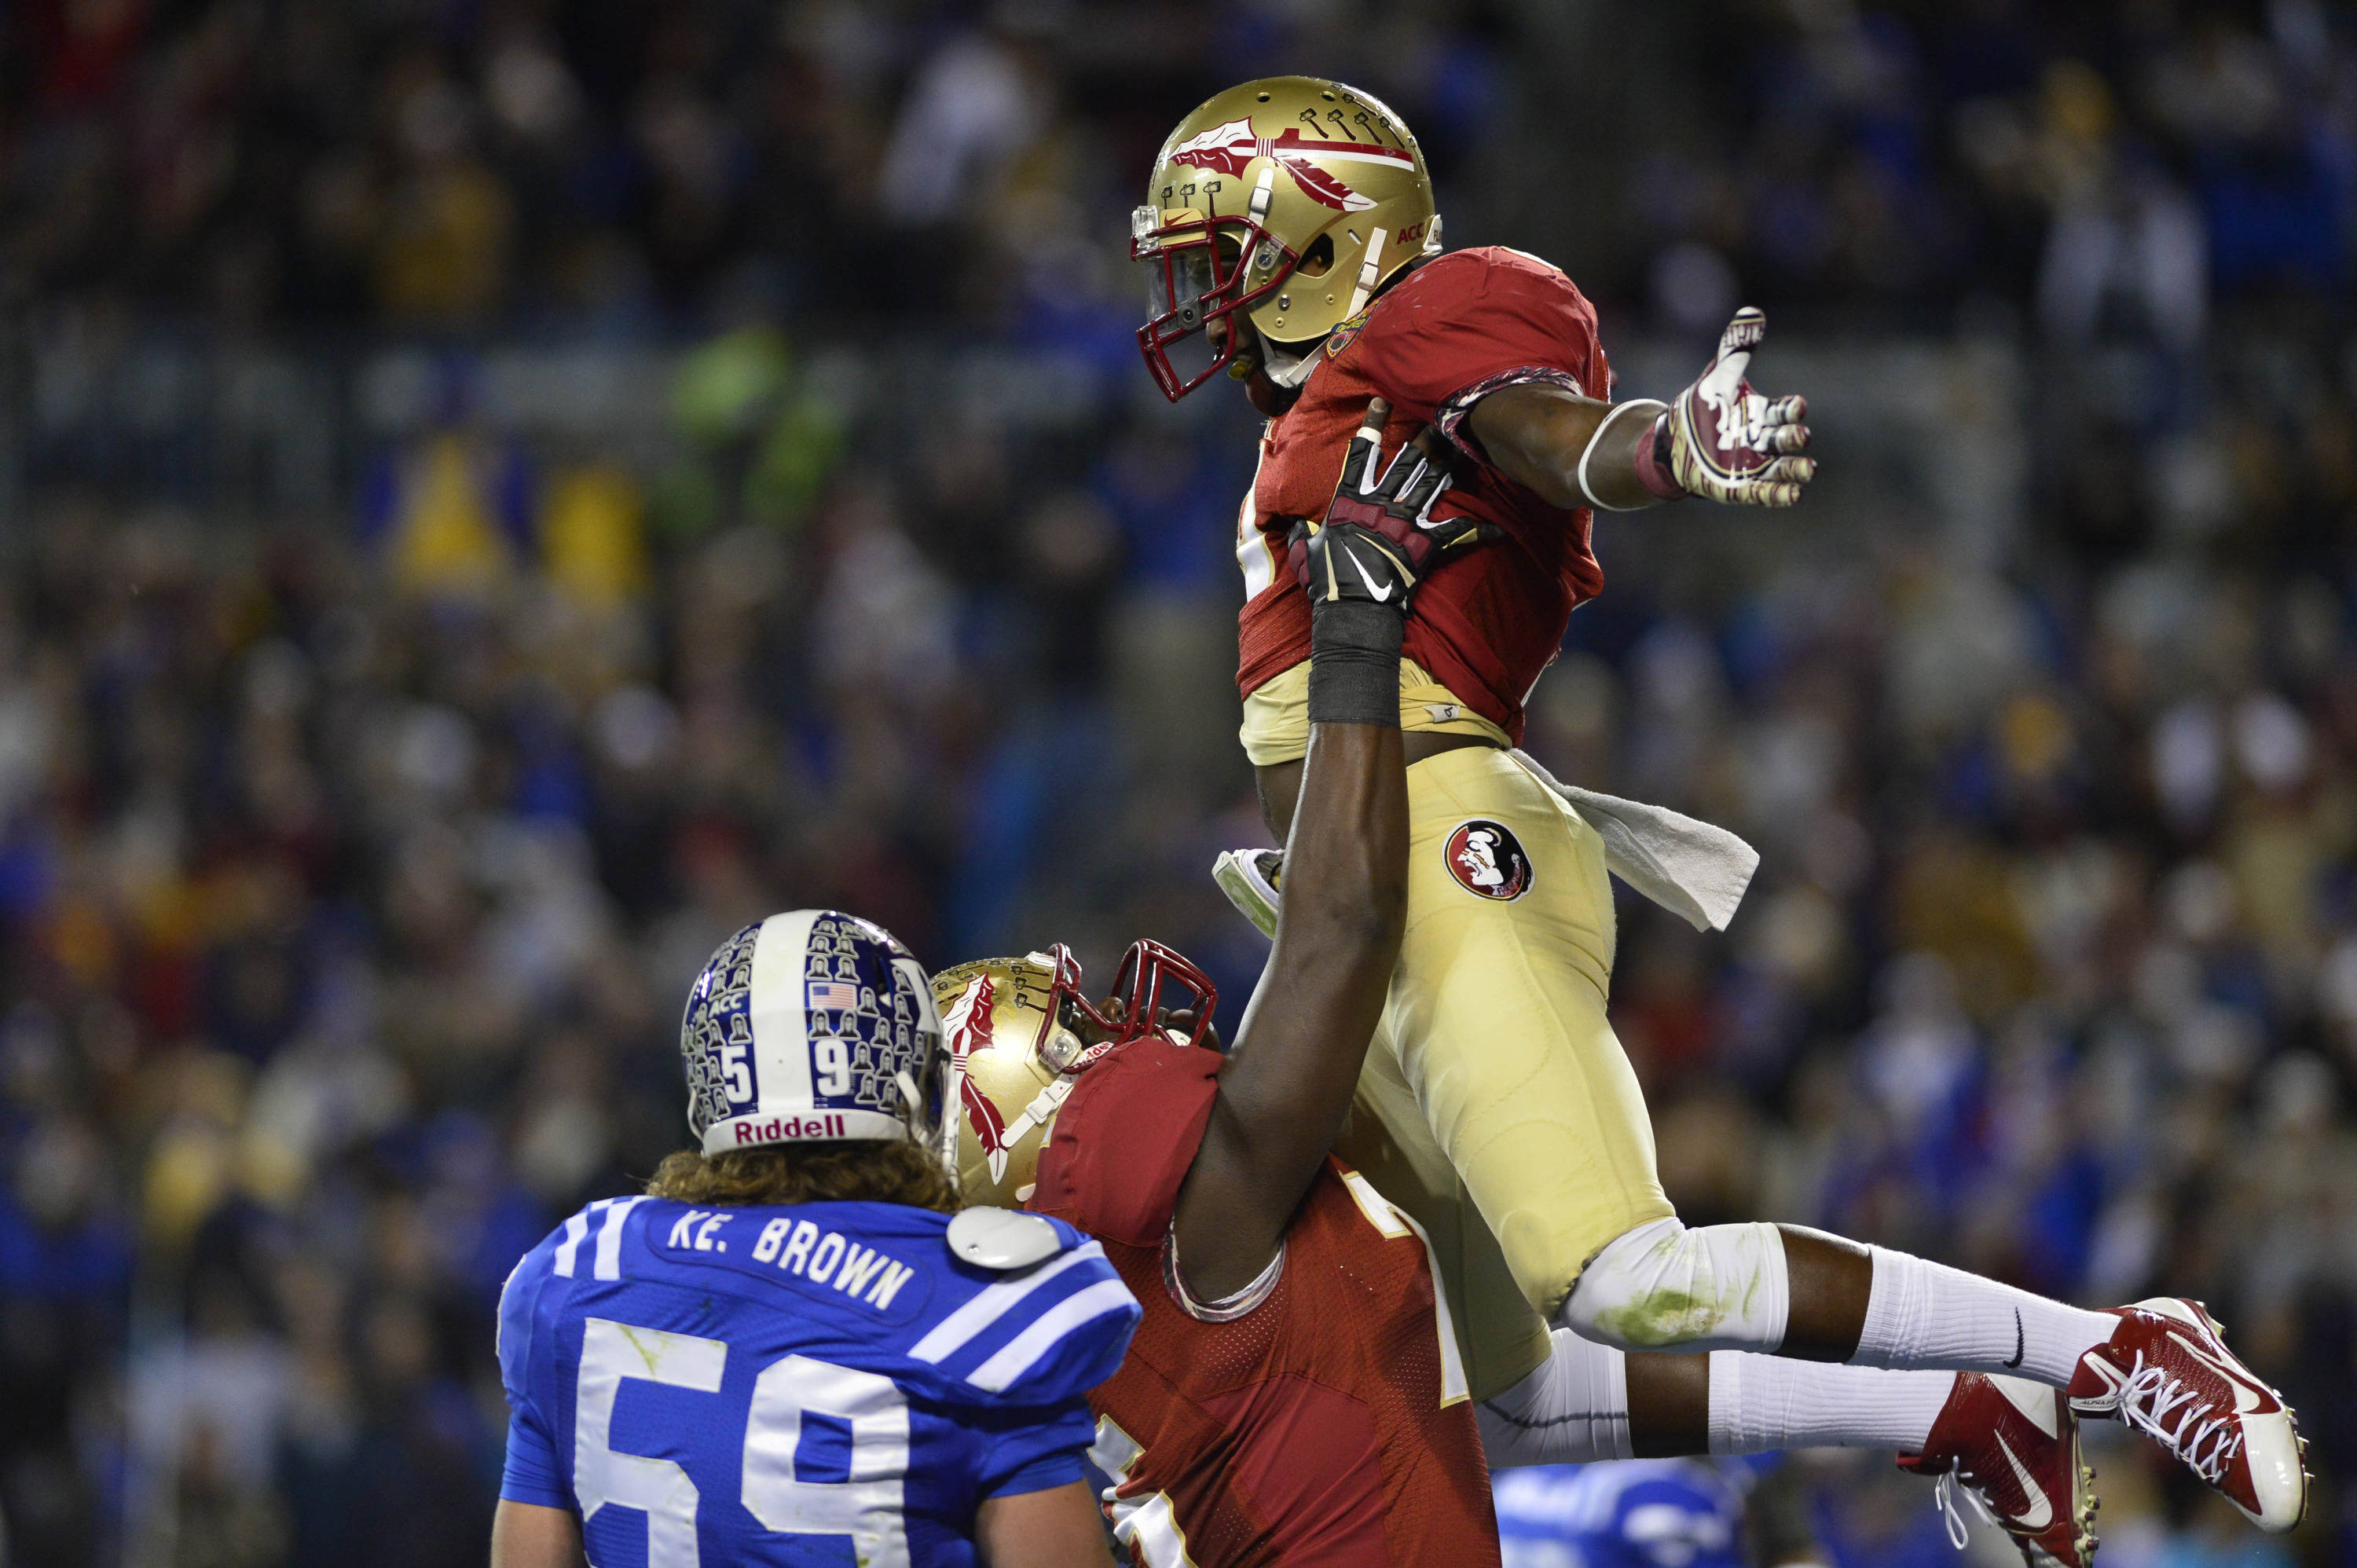 Dec 7, 2013; Charlotte, NC, USA; Florida State Seminoles running back Karlos Williams (9) is lifted into the air by offensive linesman Cameron Erving (75) after scoring a touchdown as Duke Blue Devils linebacker Kelby Brown (59) looks on in the second quarter at Bank of America Stadium. Mandatory Credit: Bob Donnan-USA TODAY Sports